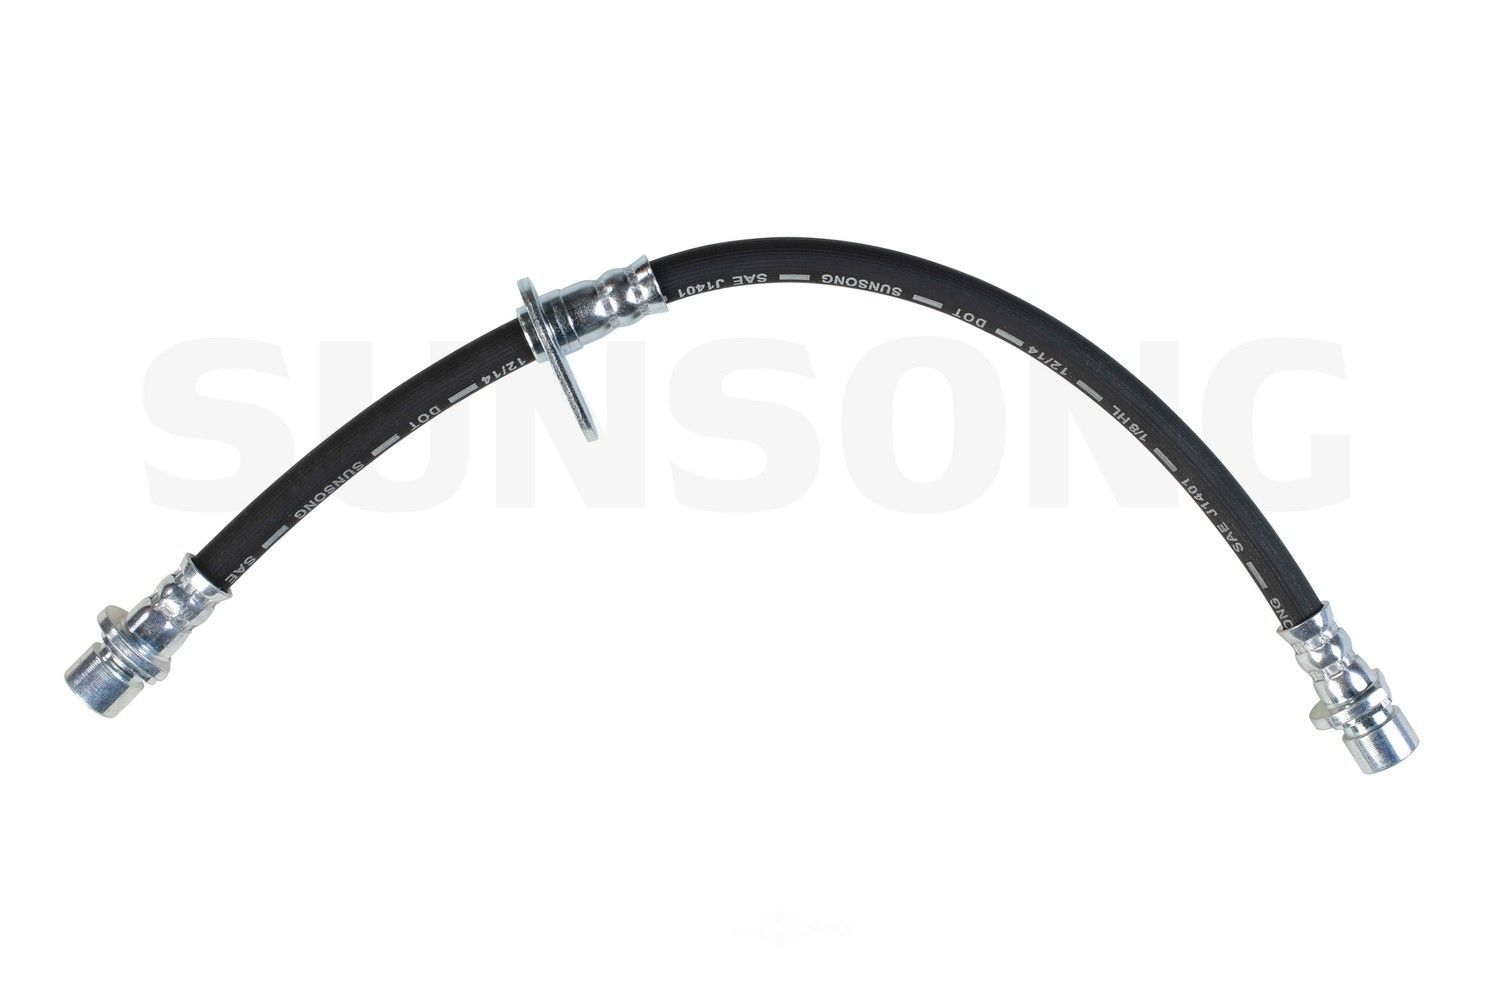 SUNSONG NORTH AMERICA - Brake Hydraulic Hose - SUG 2203963